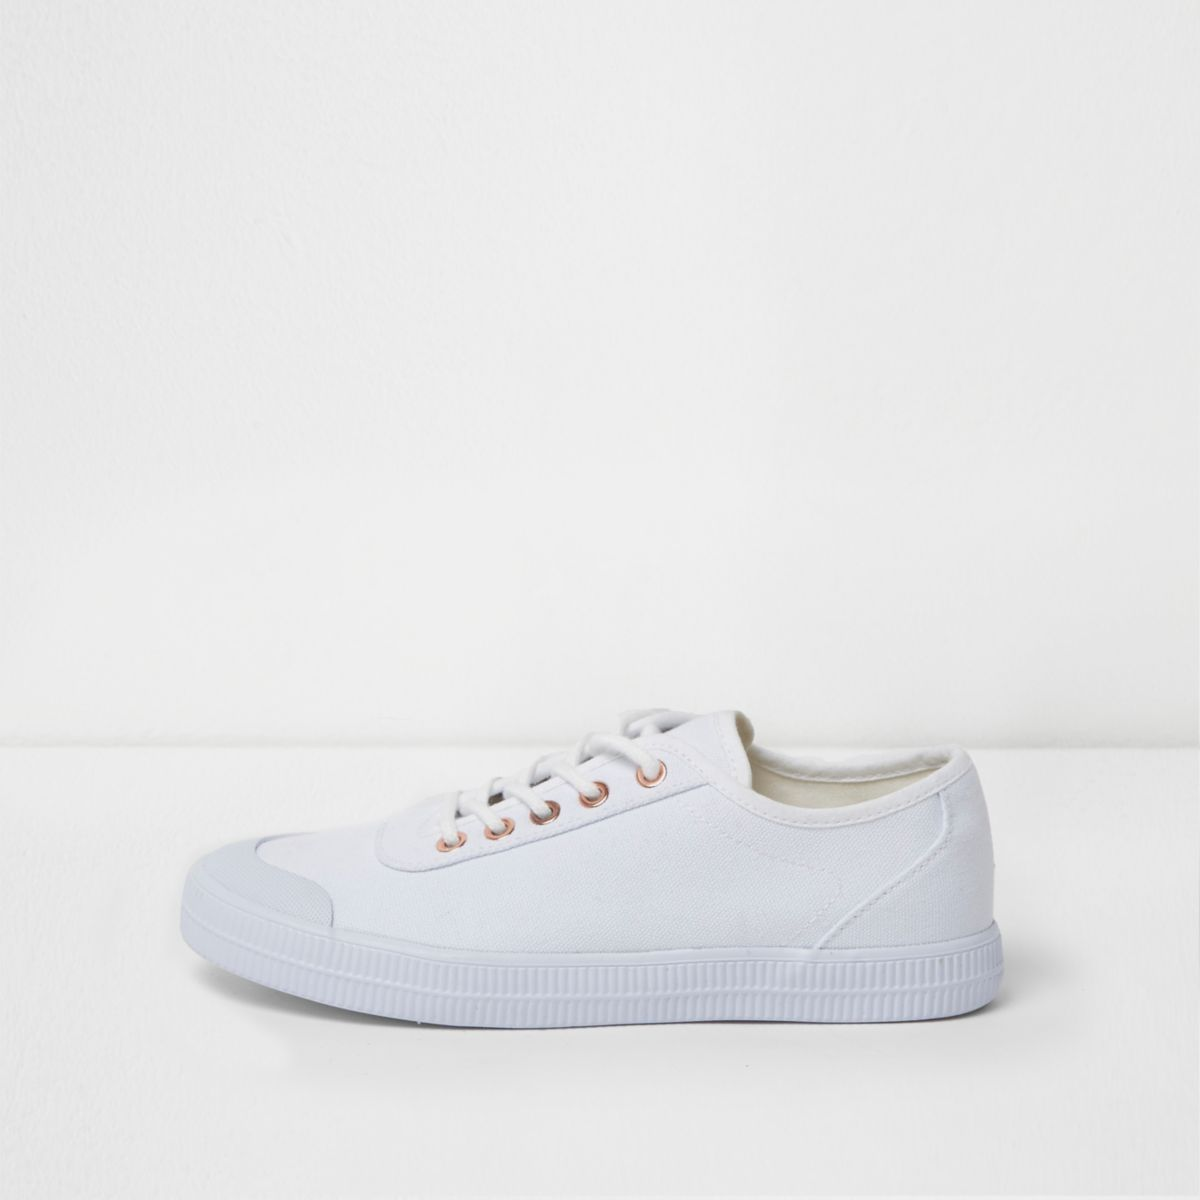 White canvas lace-up sneakers